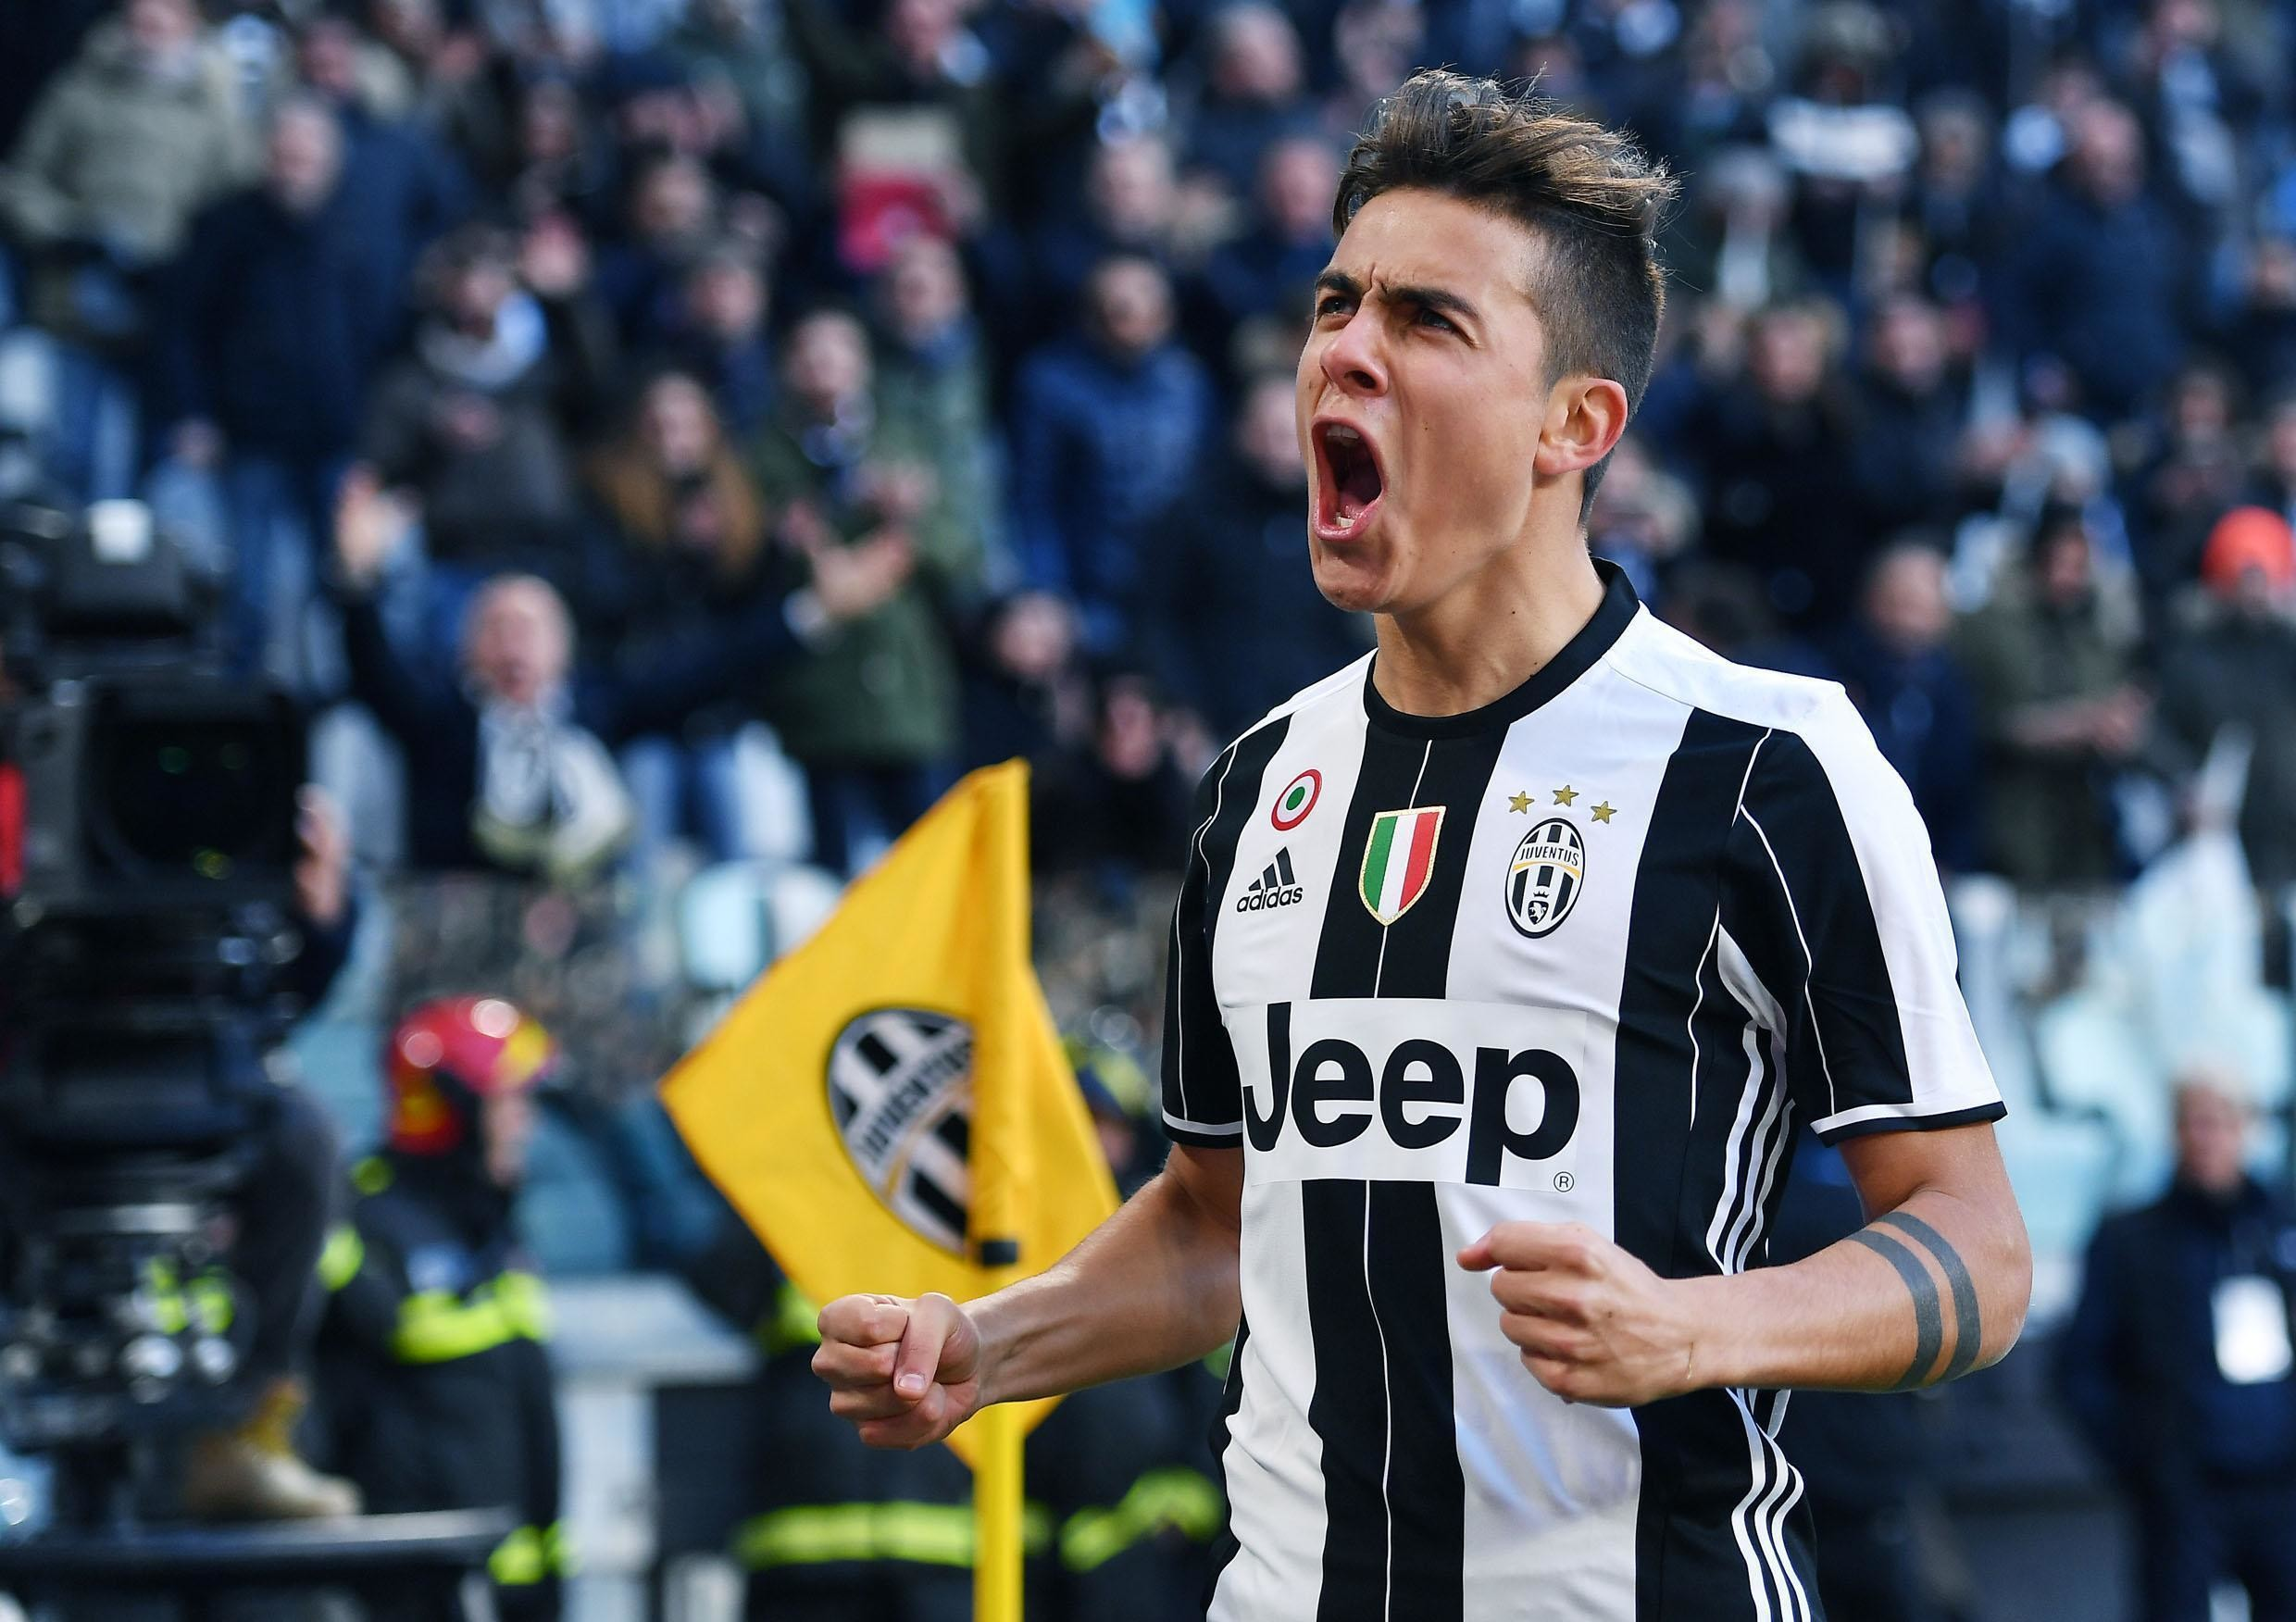 Juventus Wallpaper Iphone X Paulo Dybala Wallpapers 78 Images